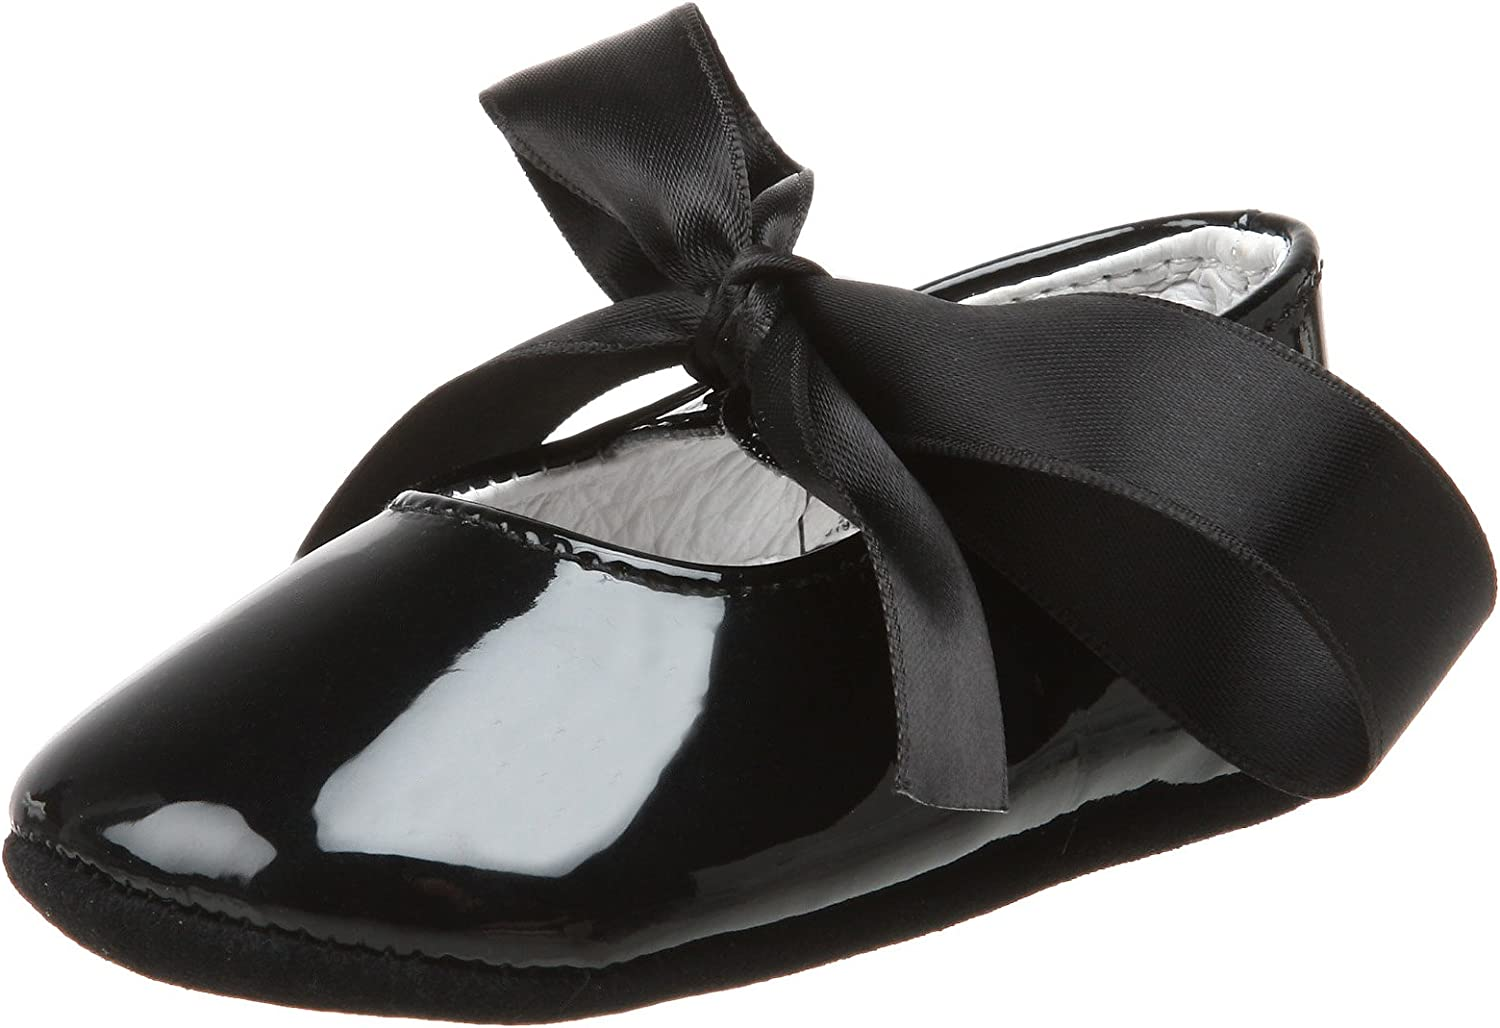 Ralph Lauren Layette Kids Baby Girl's Briley Soft Sole Shoe (Infant/Toddler): Shoes